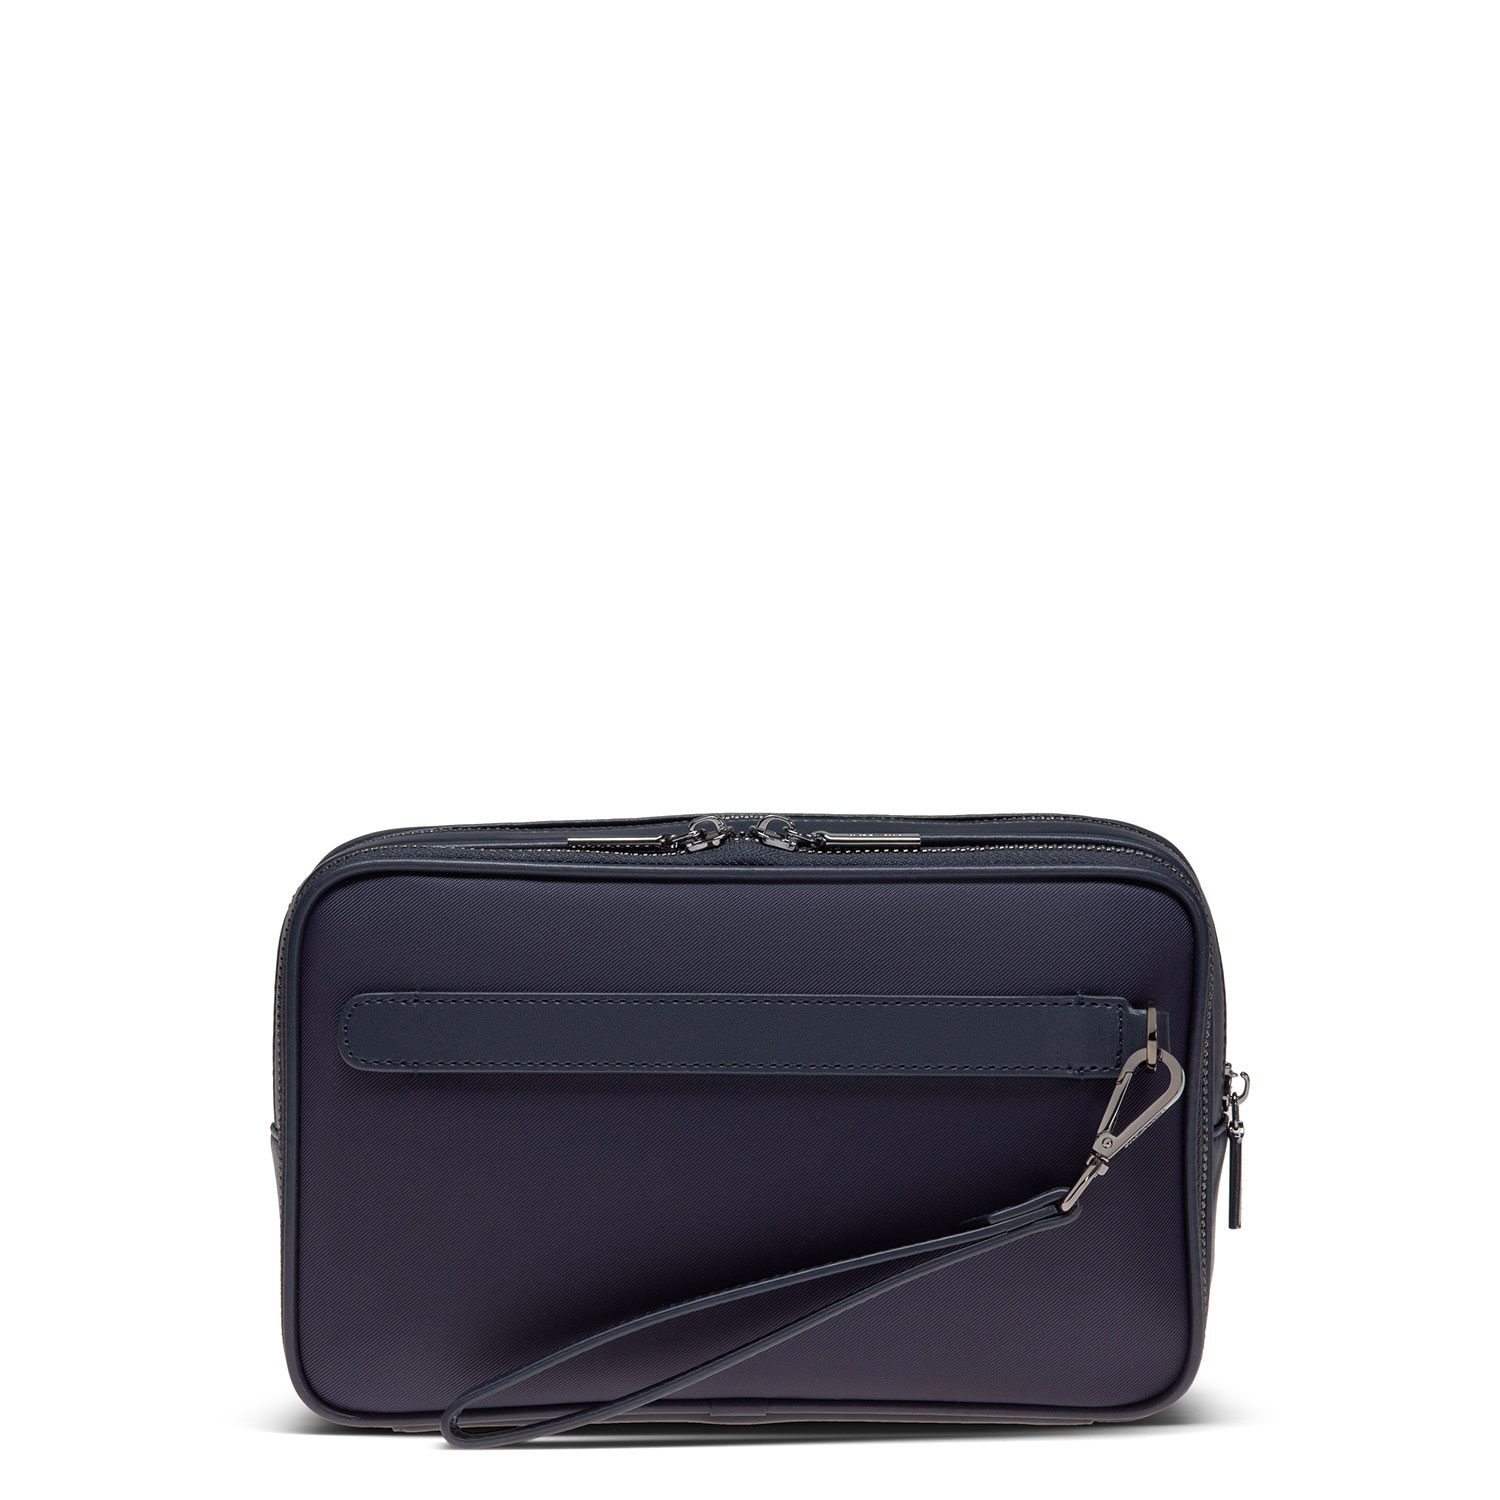 Men's handbag PAZOLINI BS-N1316-6